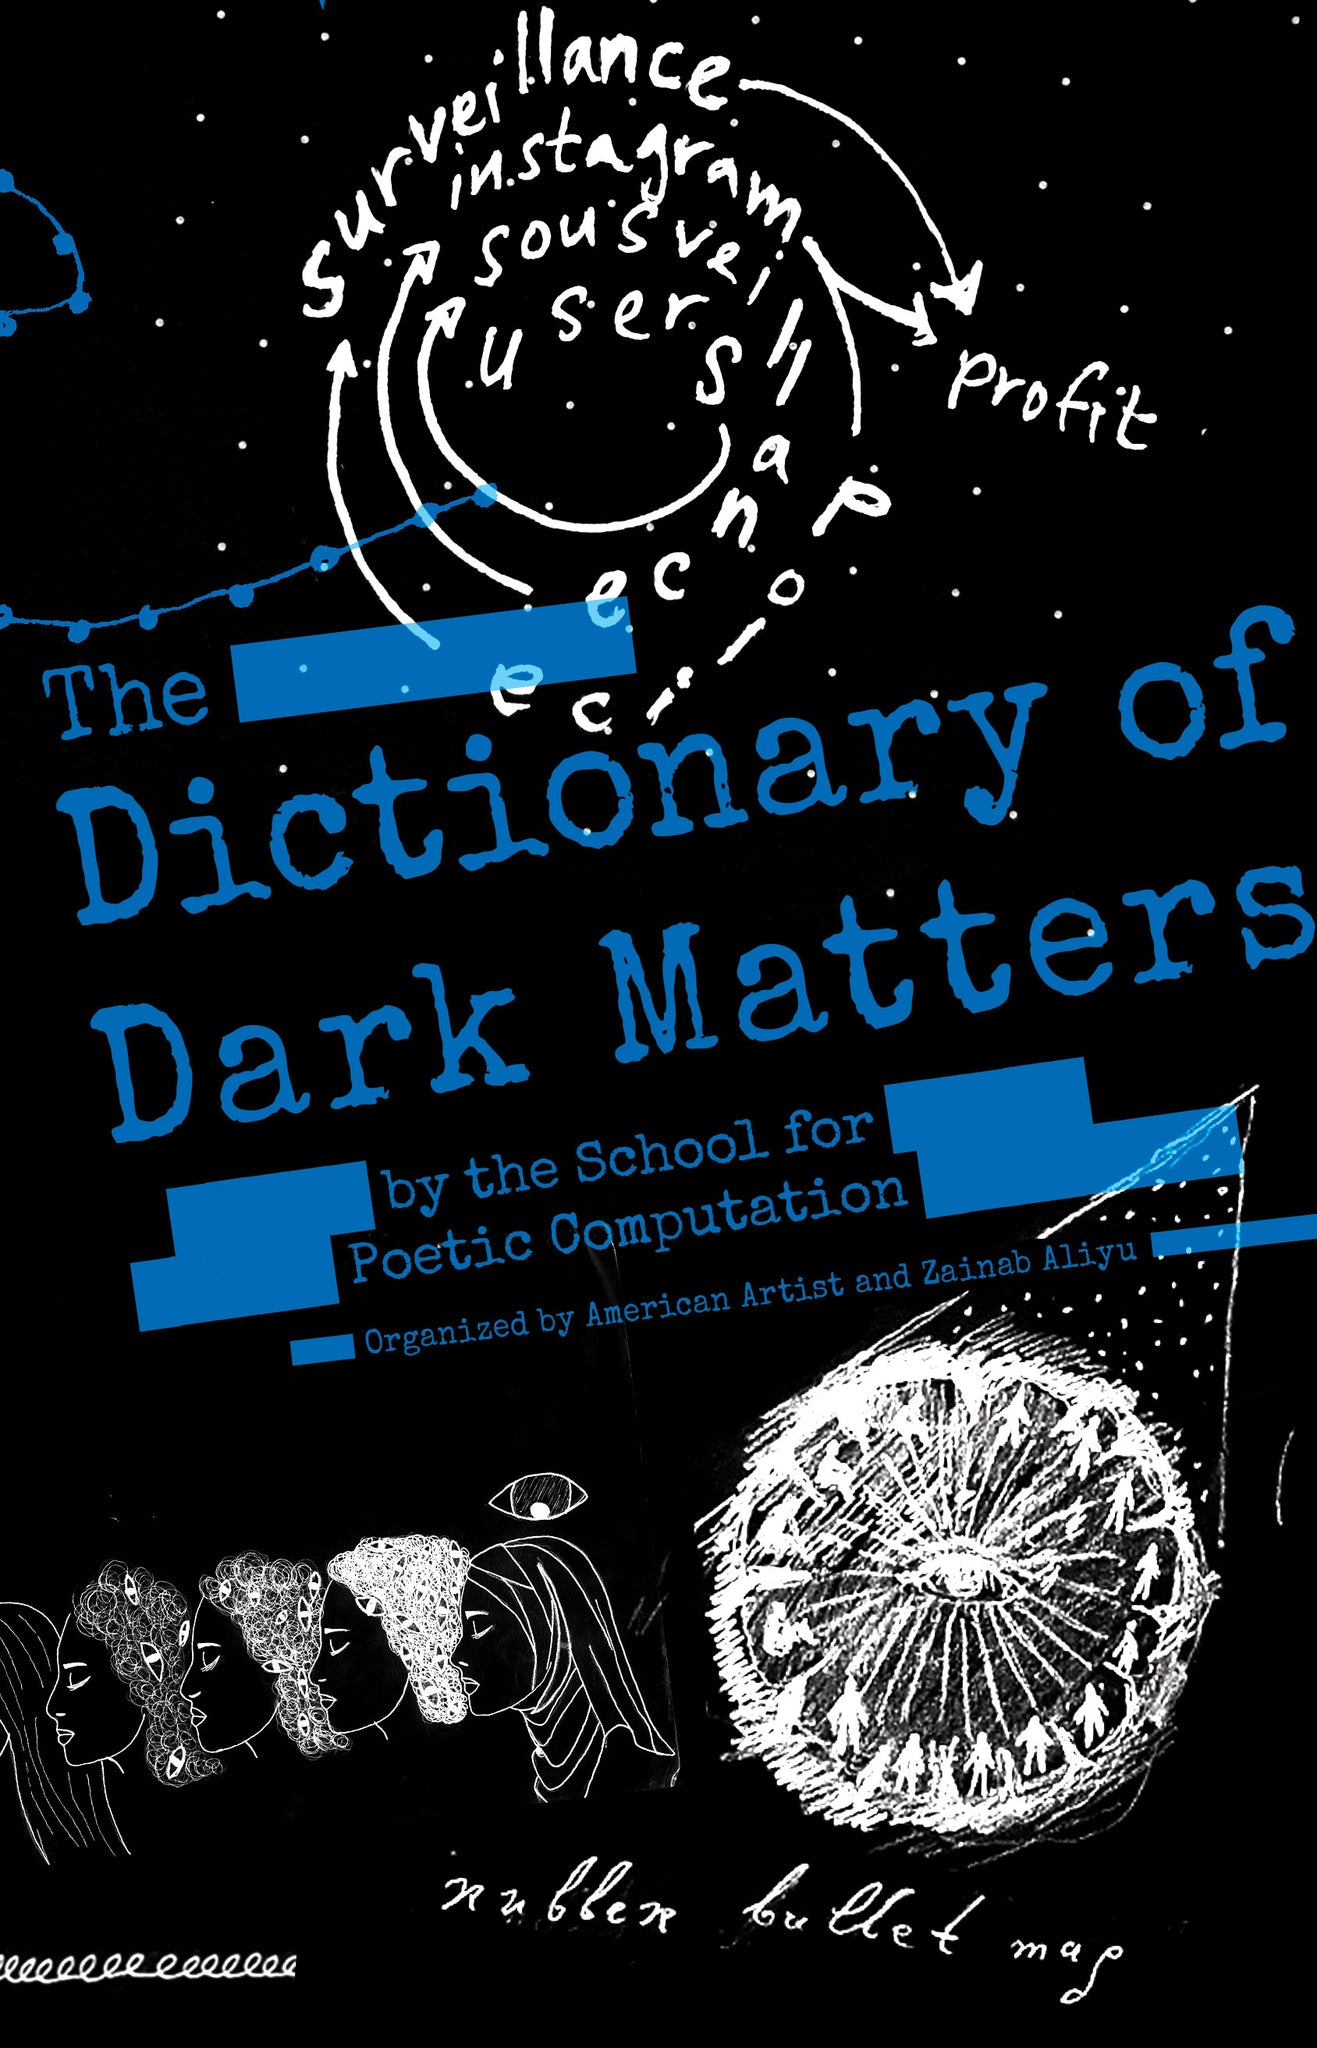 The Dictionary of Dark Matters organized by American Artist